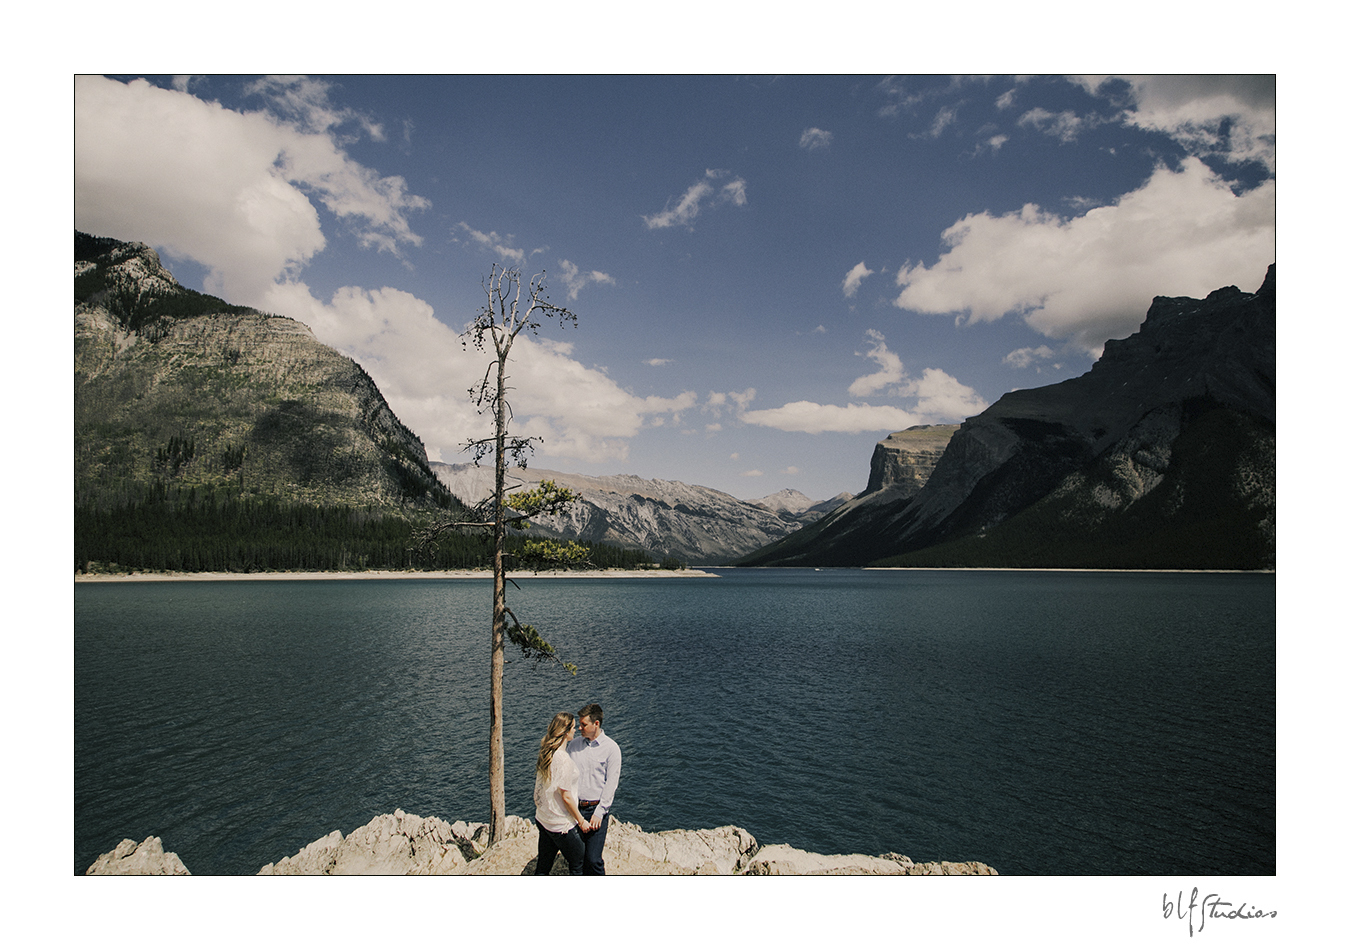 00001-blfstudios-banff-engagement-photos-amanda-eric.jpg